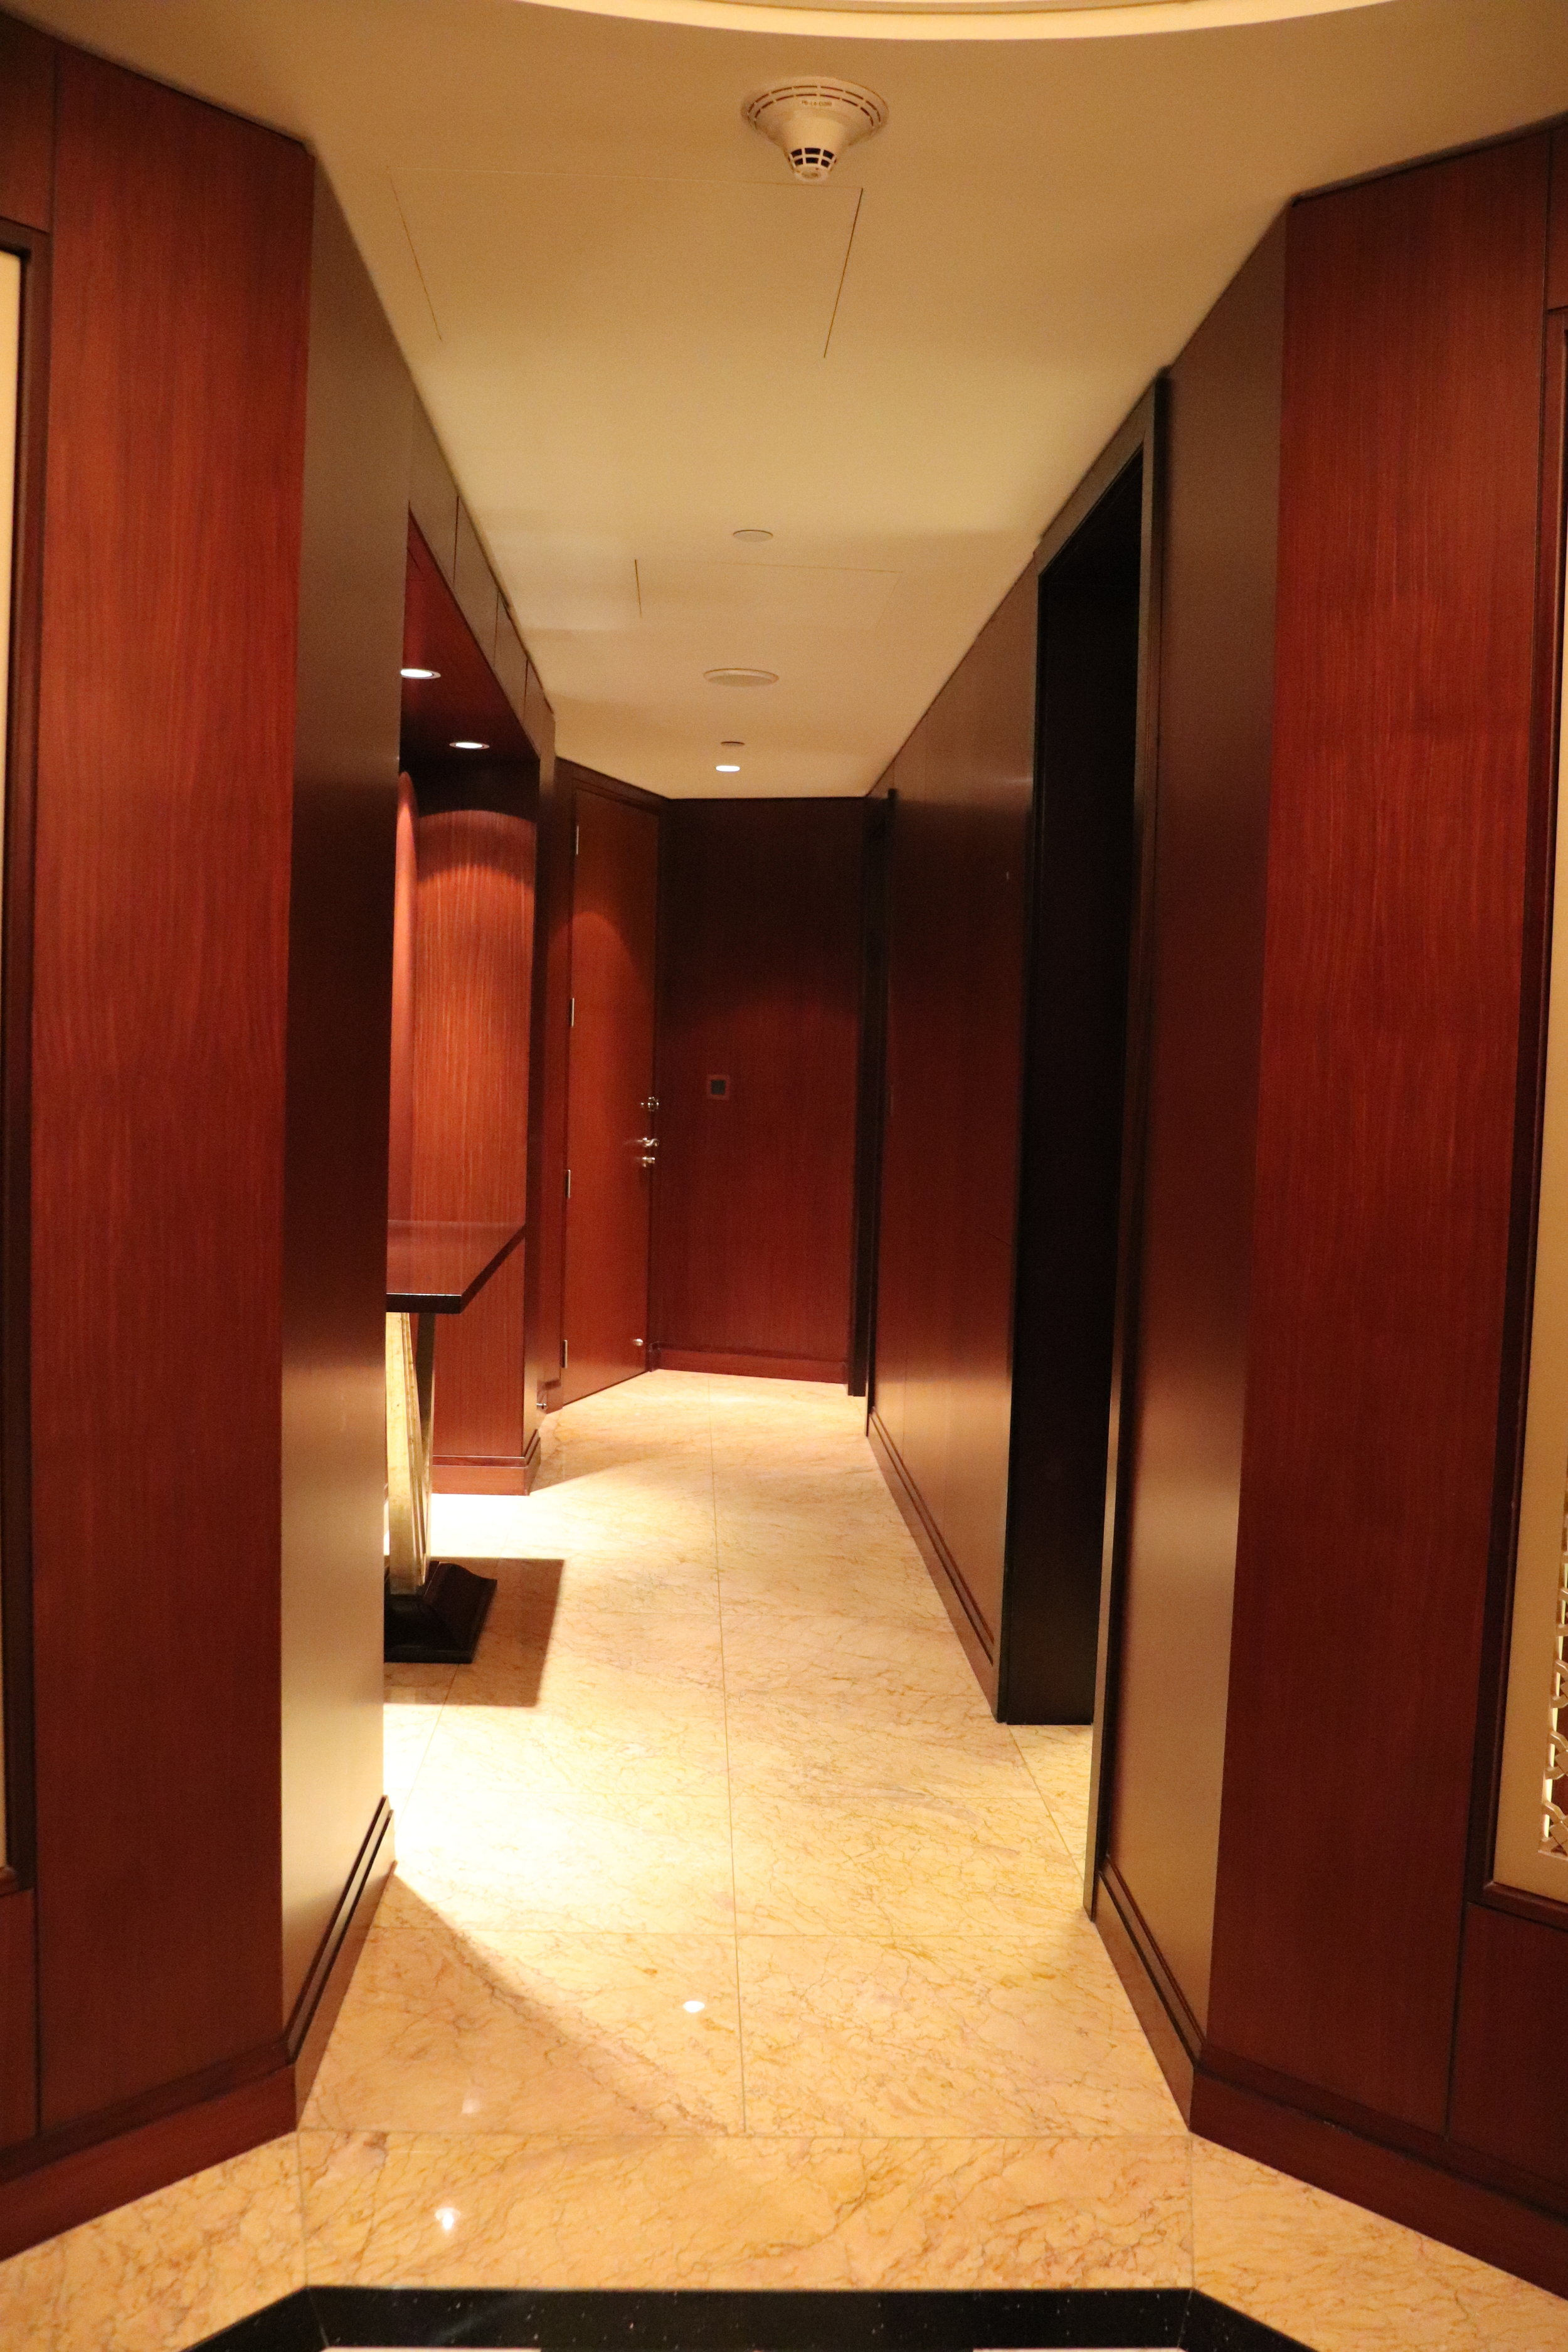 - The master bathroom and bedroom are the door on the right about midway down. There is also a second bathroom at the end of the hall on the right. The door to the left at the end of the hall was a connecting door to an adjoining suite.